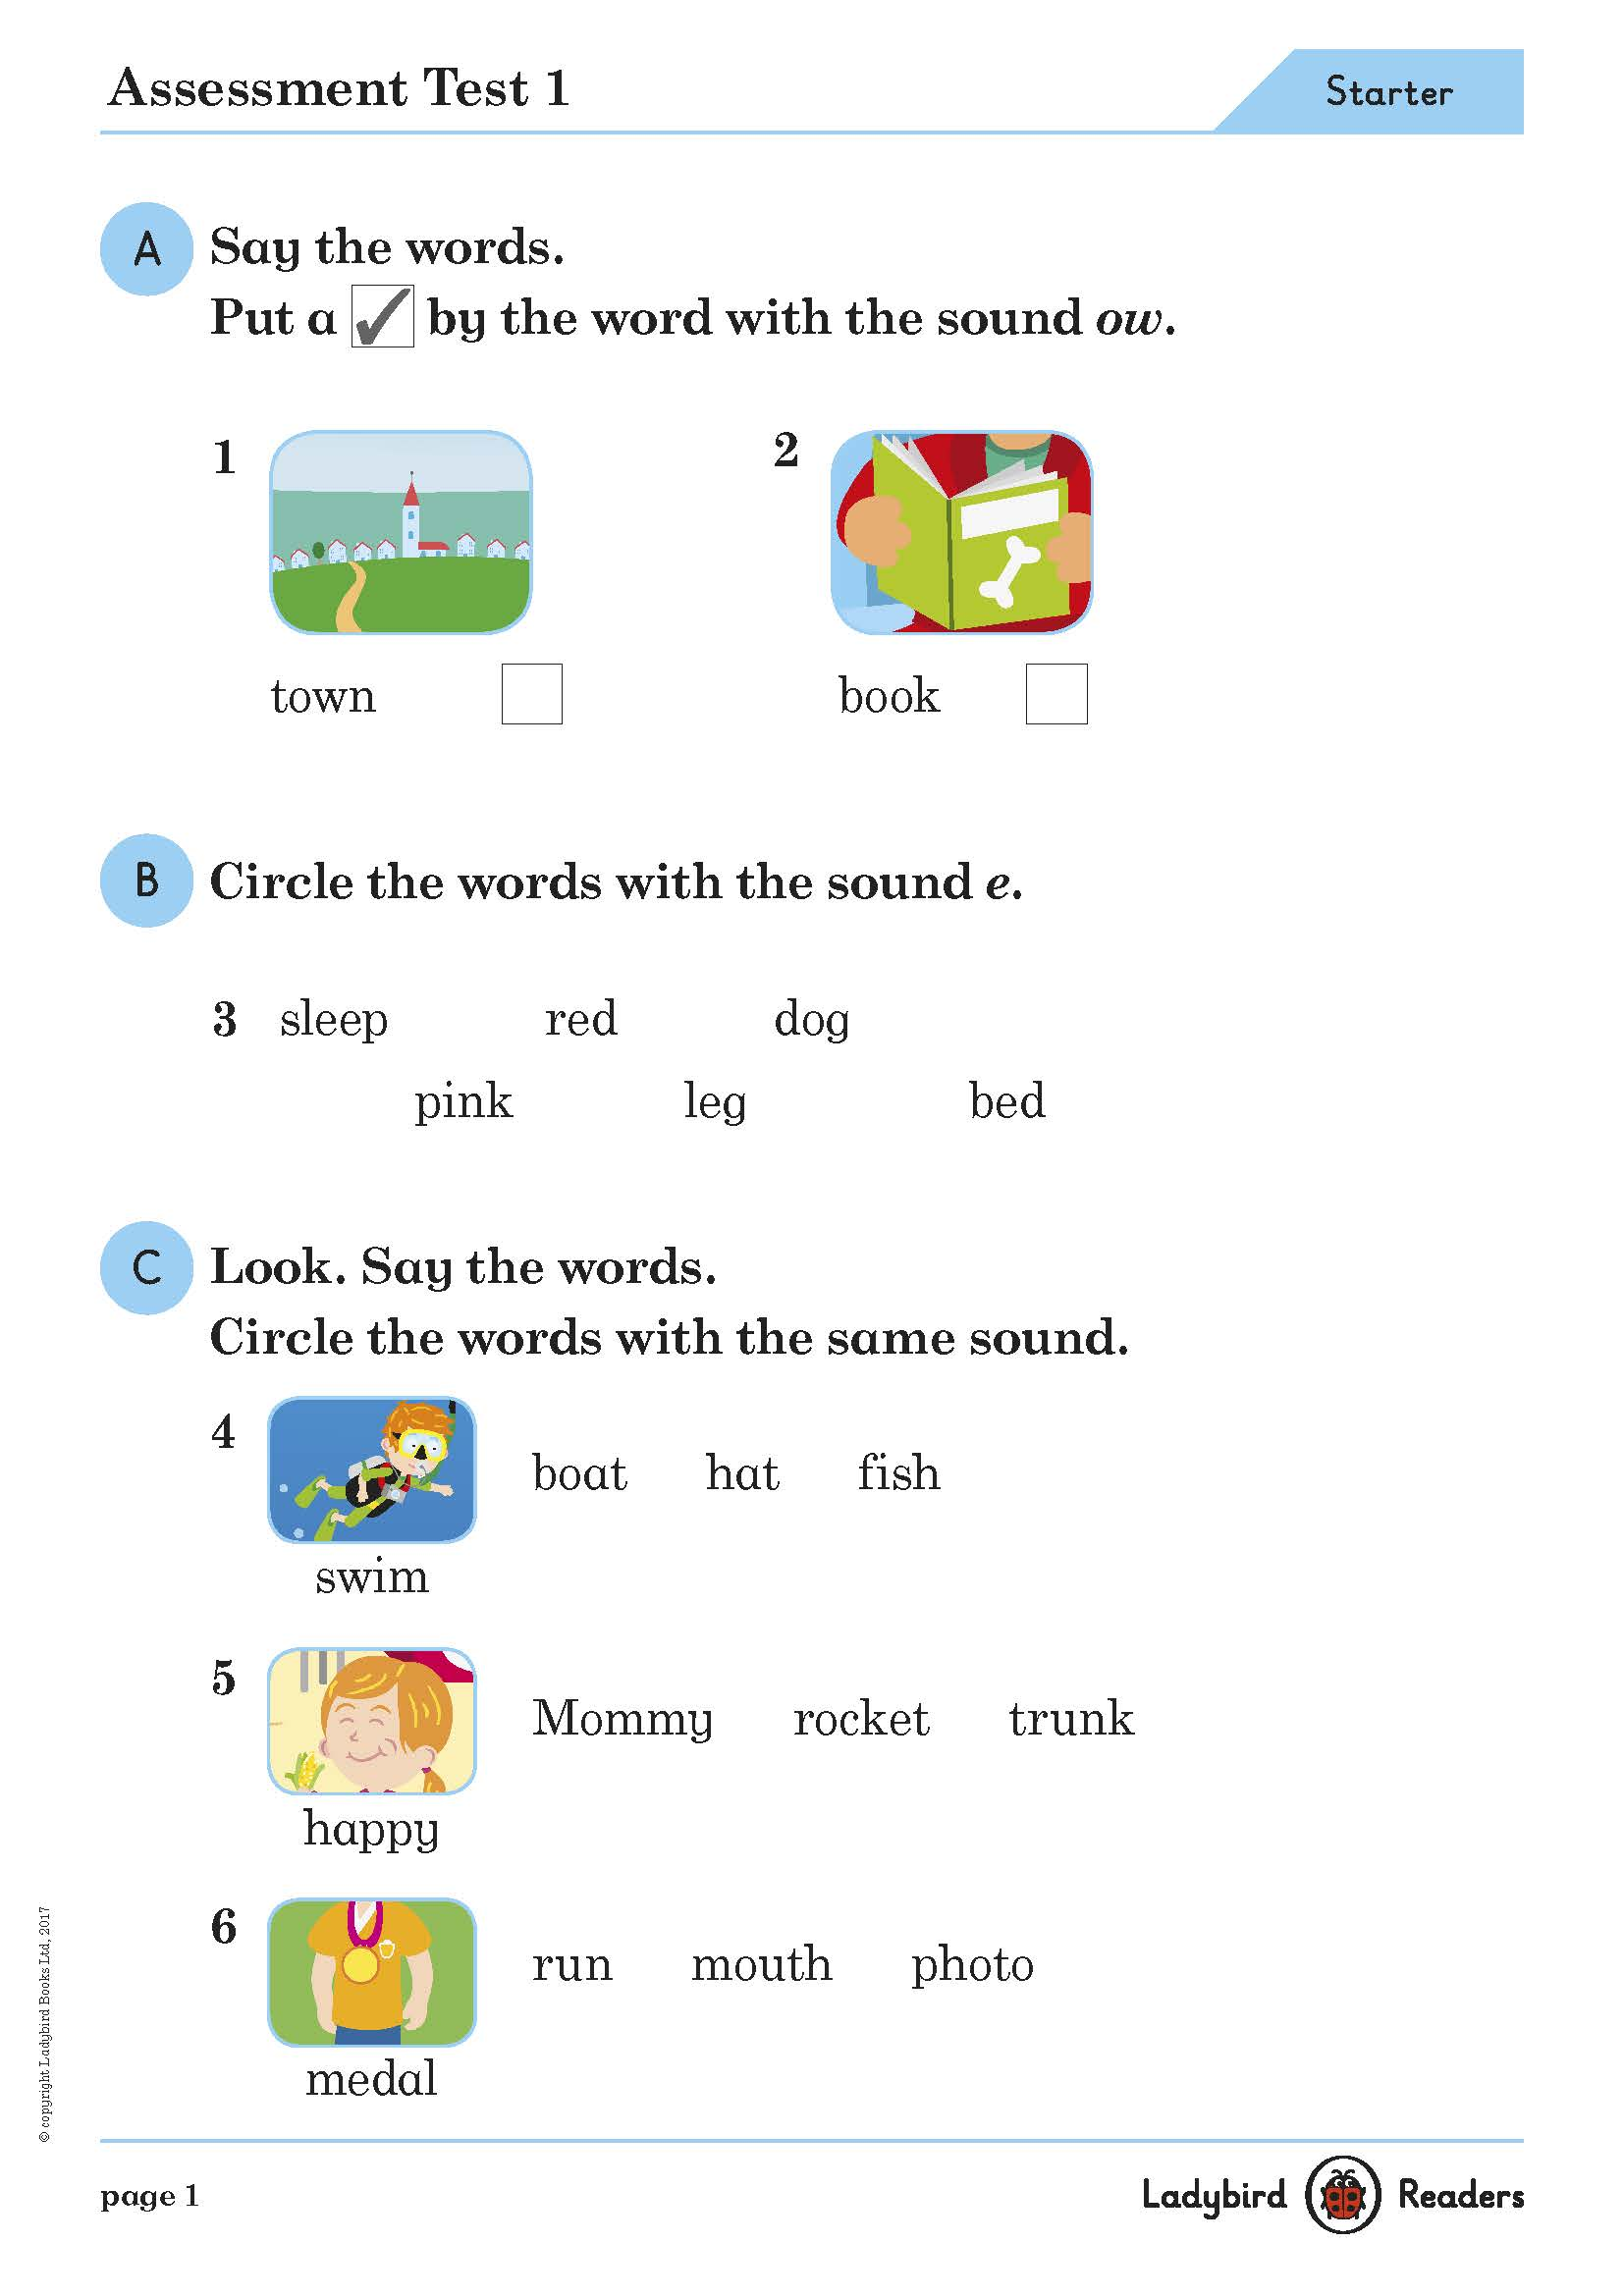 Ladybird Readers Starter Assessment Tests and Answer Keys